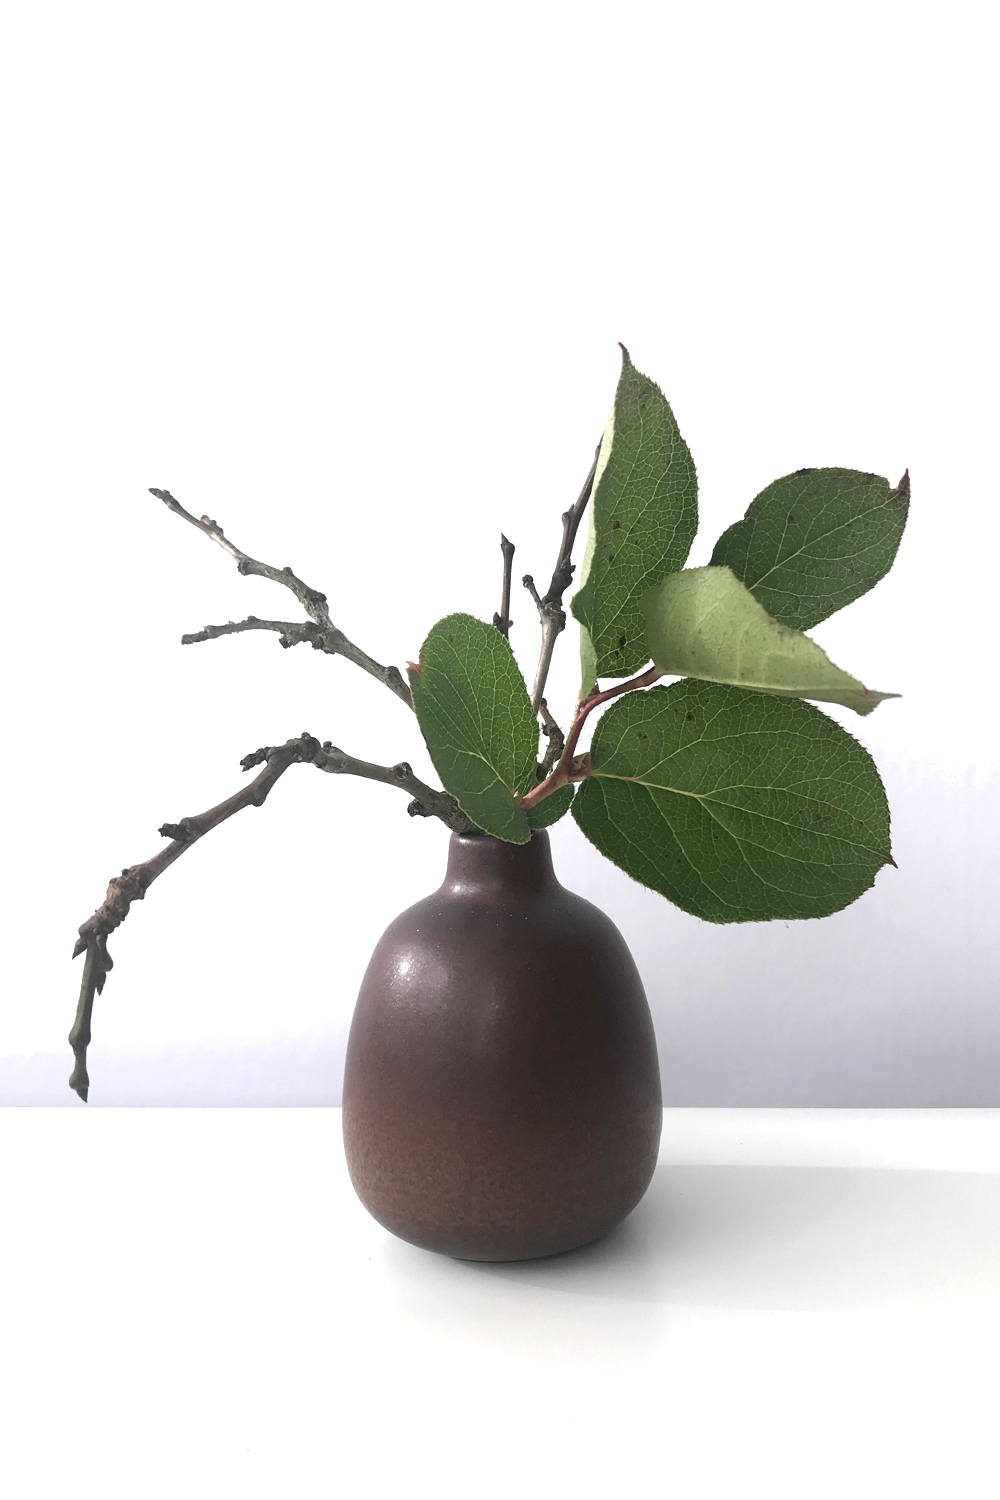 Wraptillion's studio flowers: a small everyday winter flower arrangement of bare plum branches and evergreen salal leaves, in a Heath Ceramics bud vase.